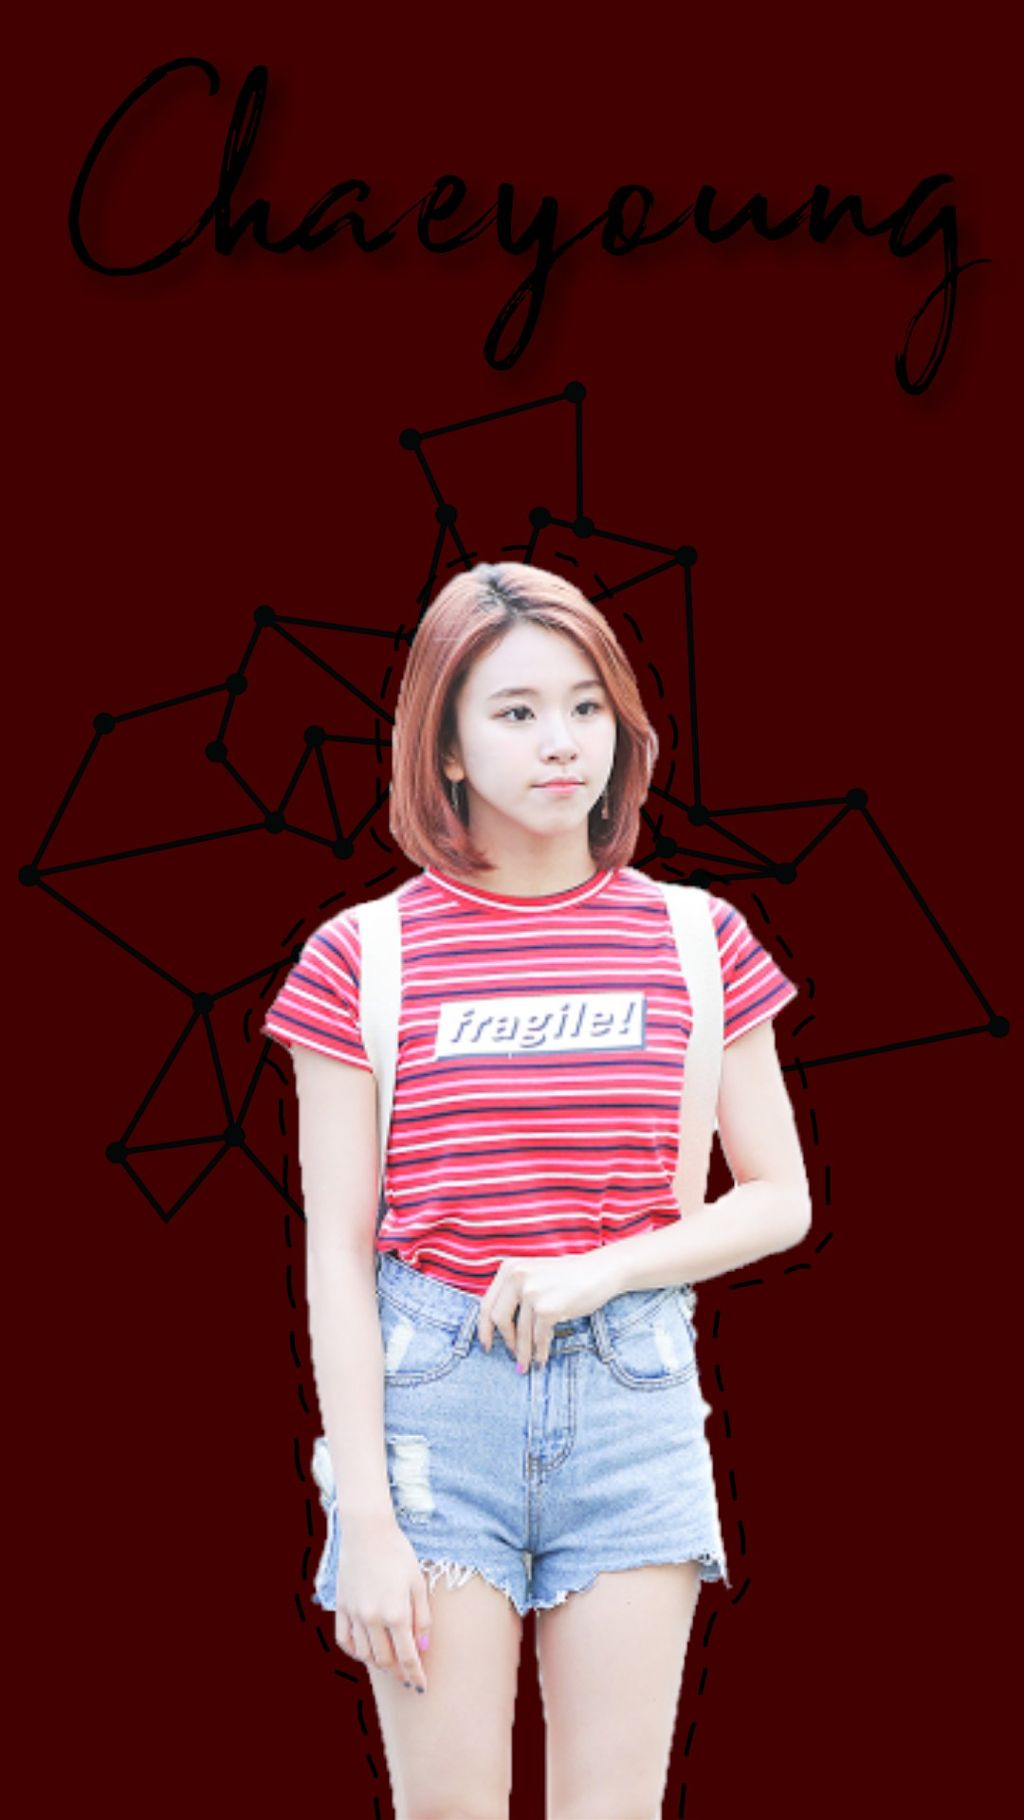 Twice Chaeyoung Wallpaper Iphone